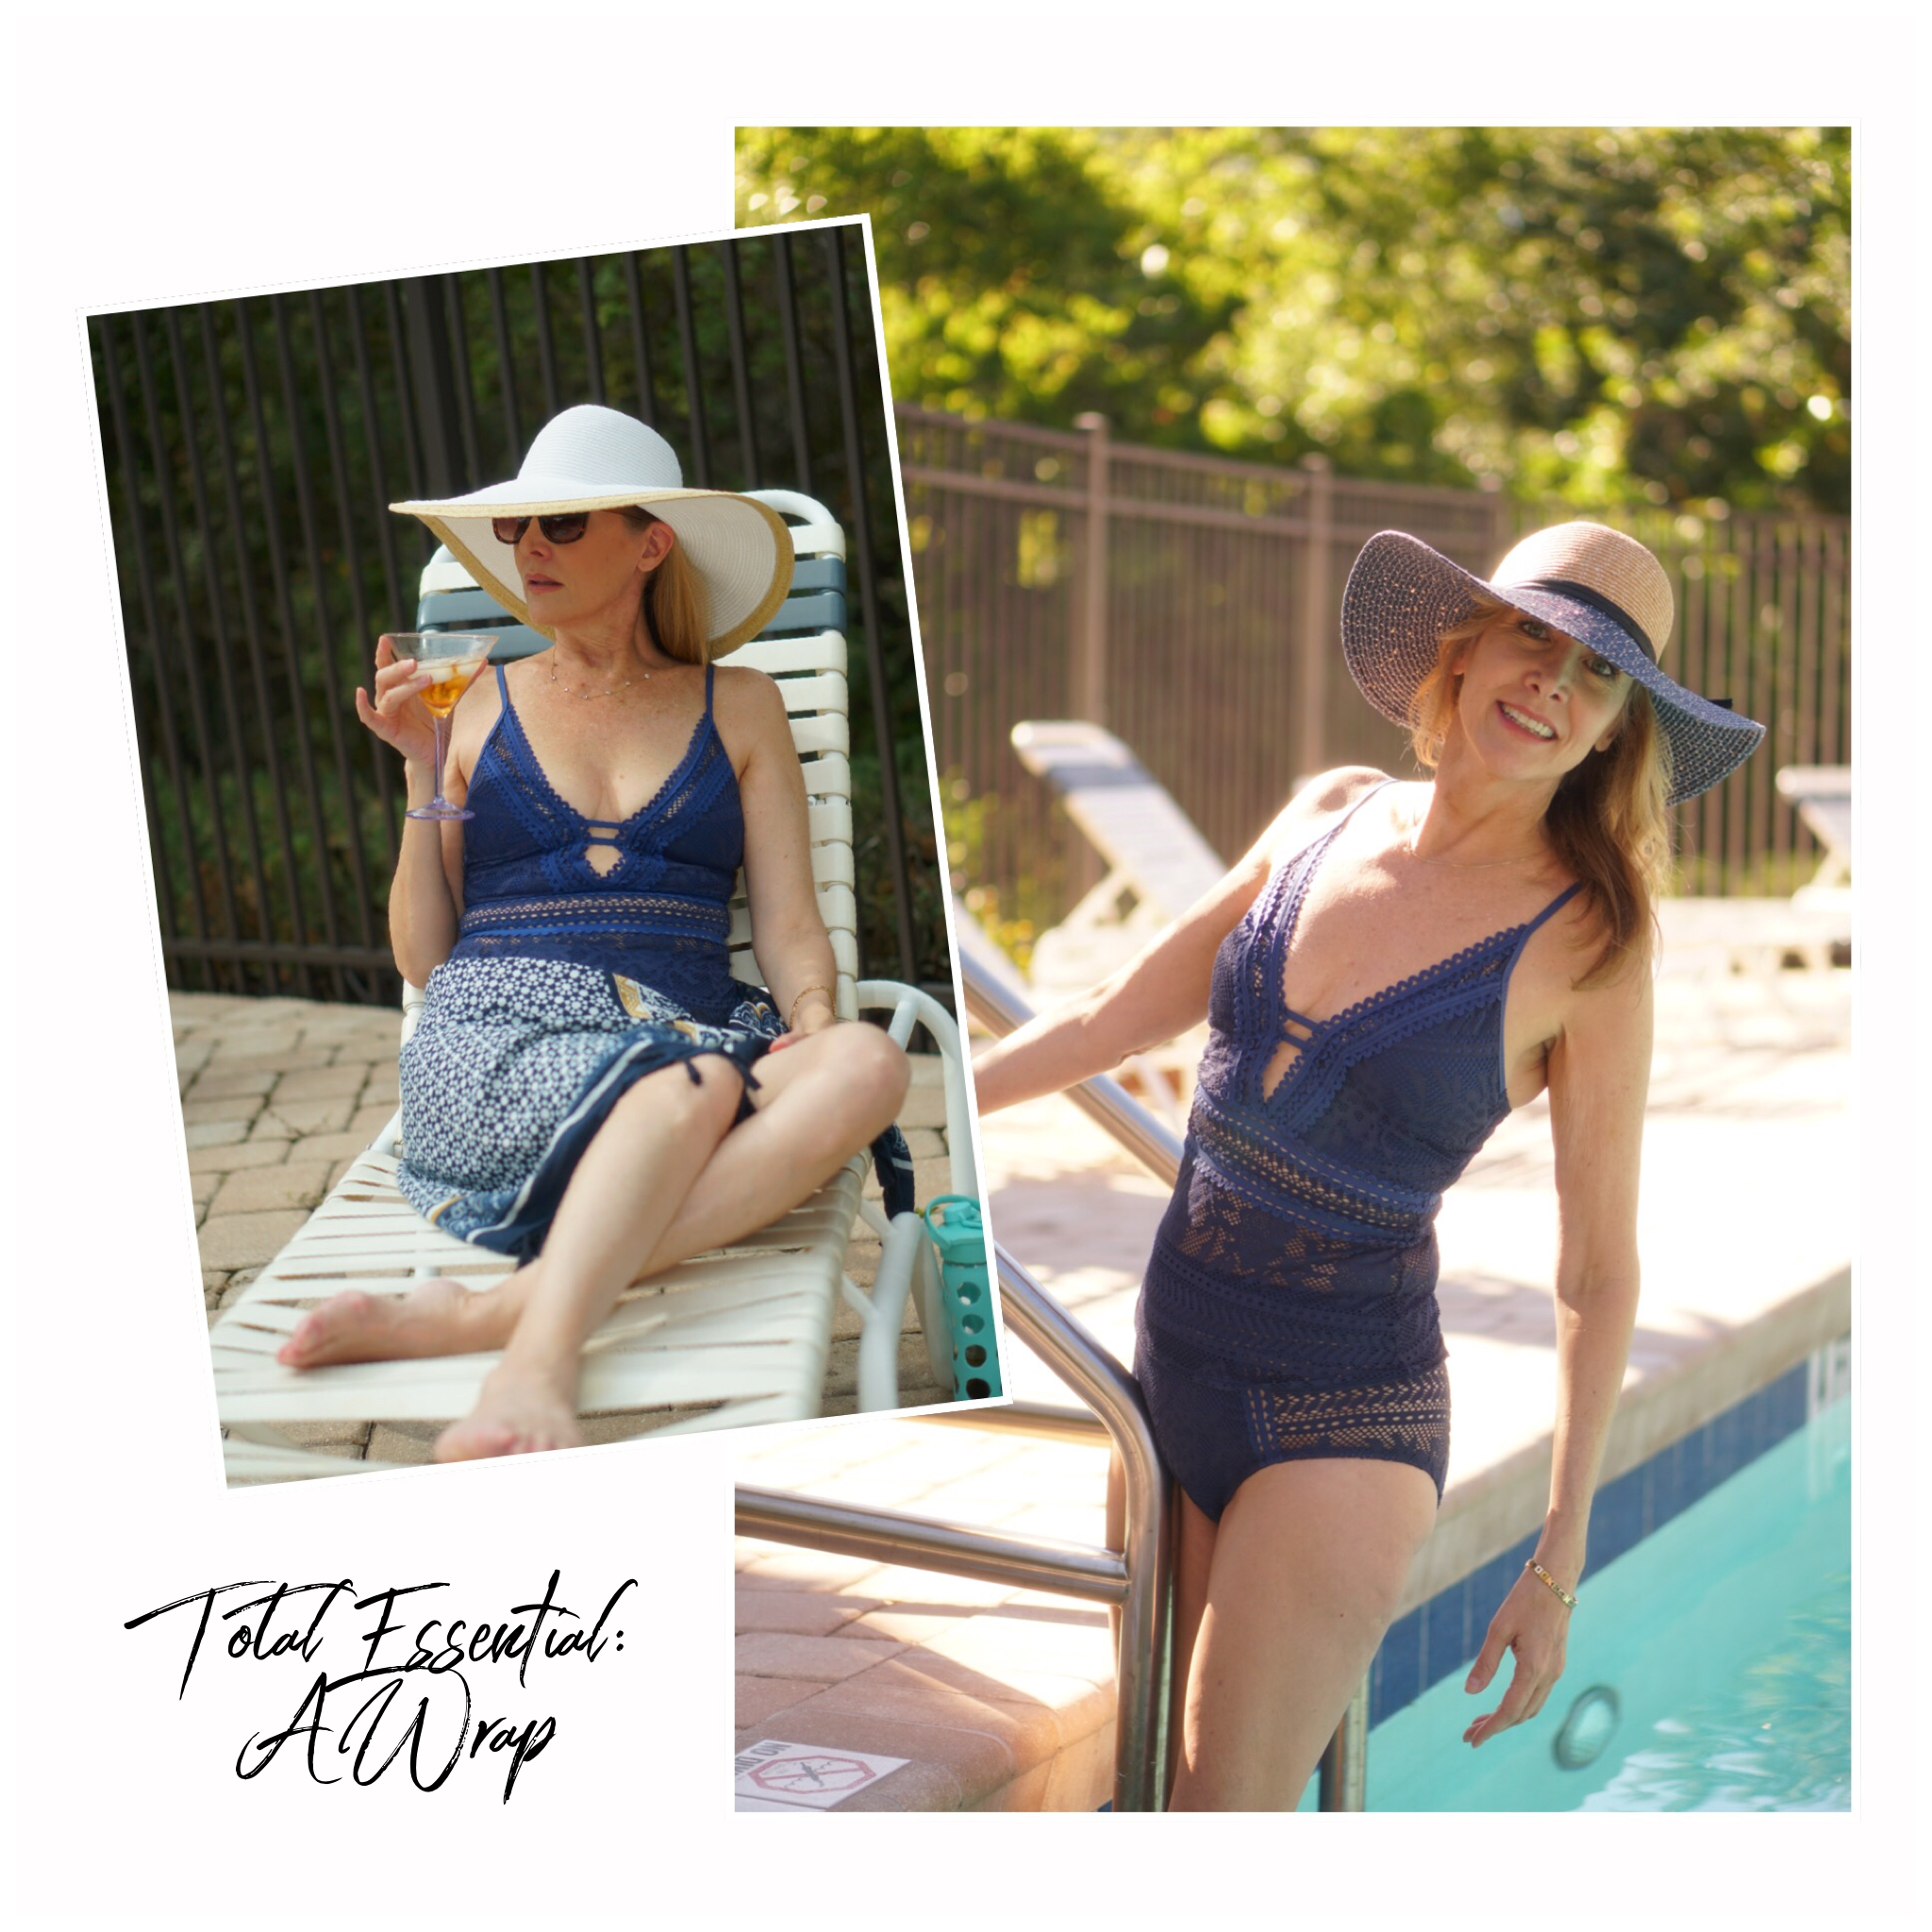 Woman in blue swimsuit and hat